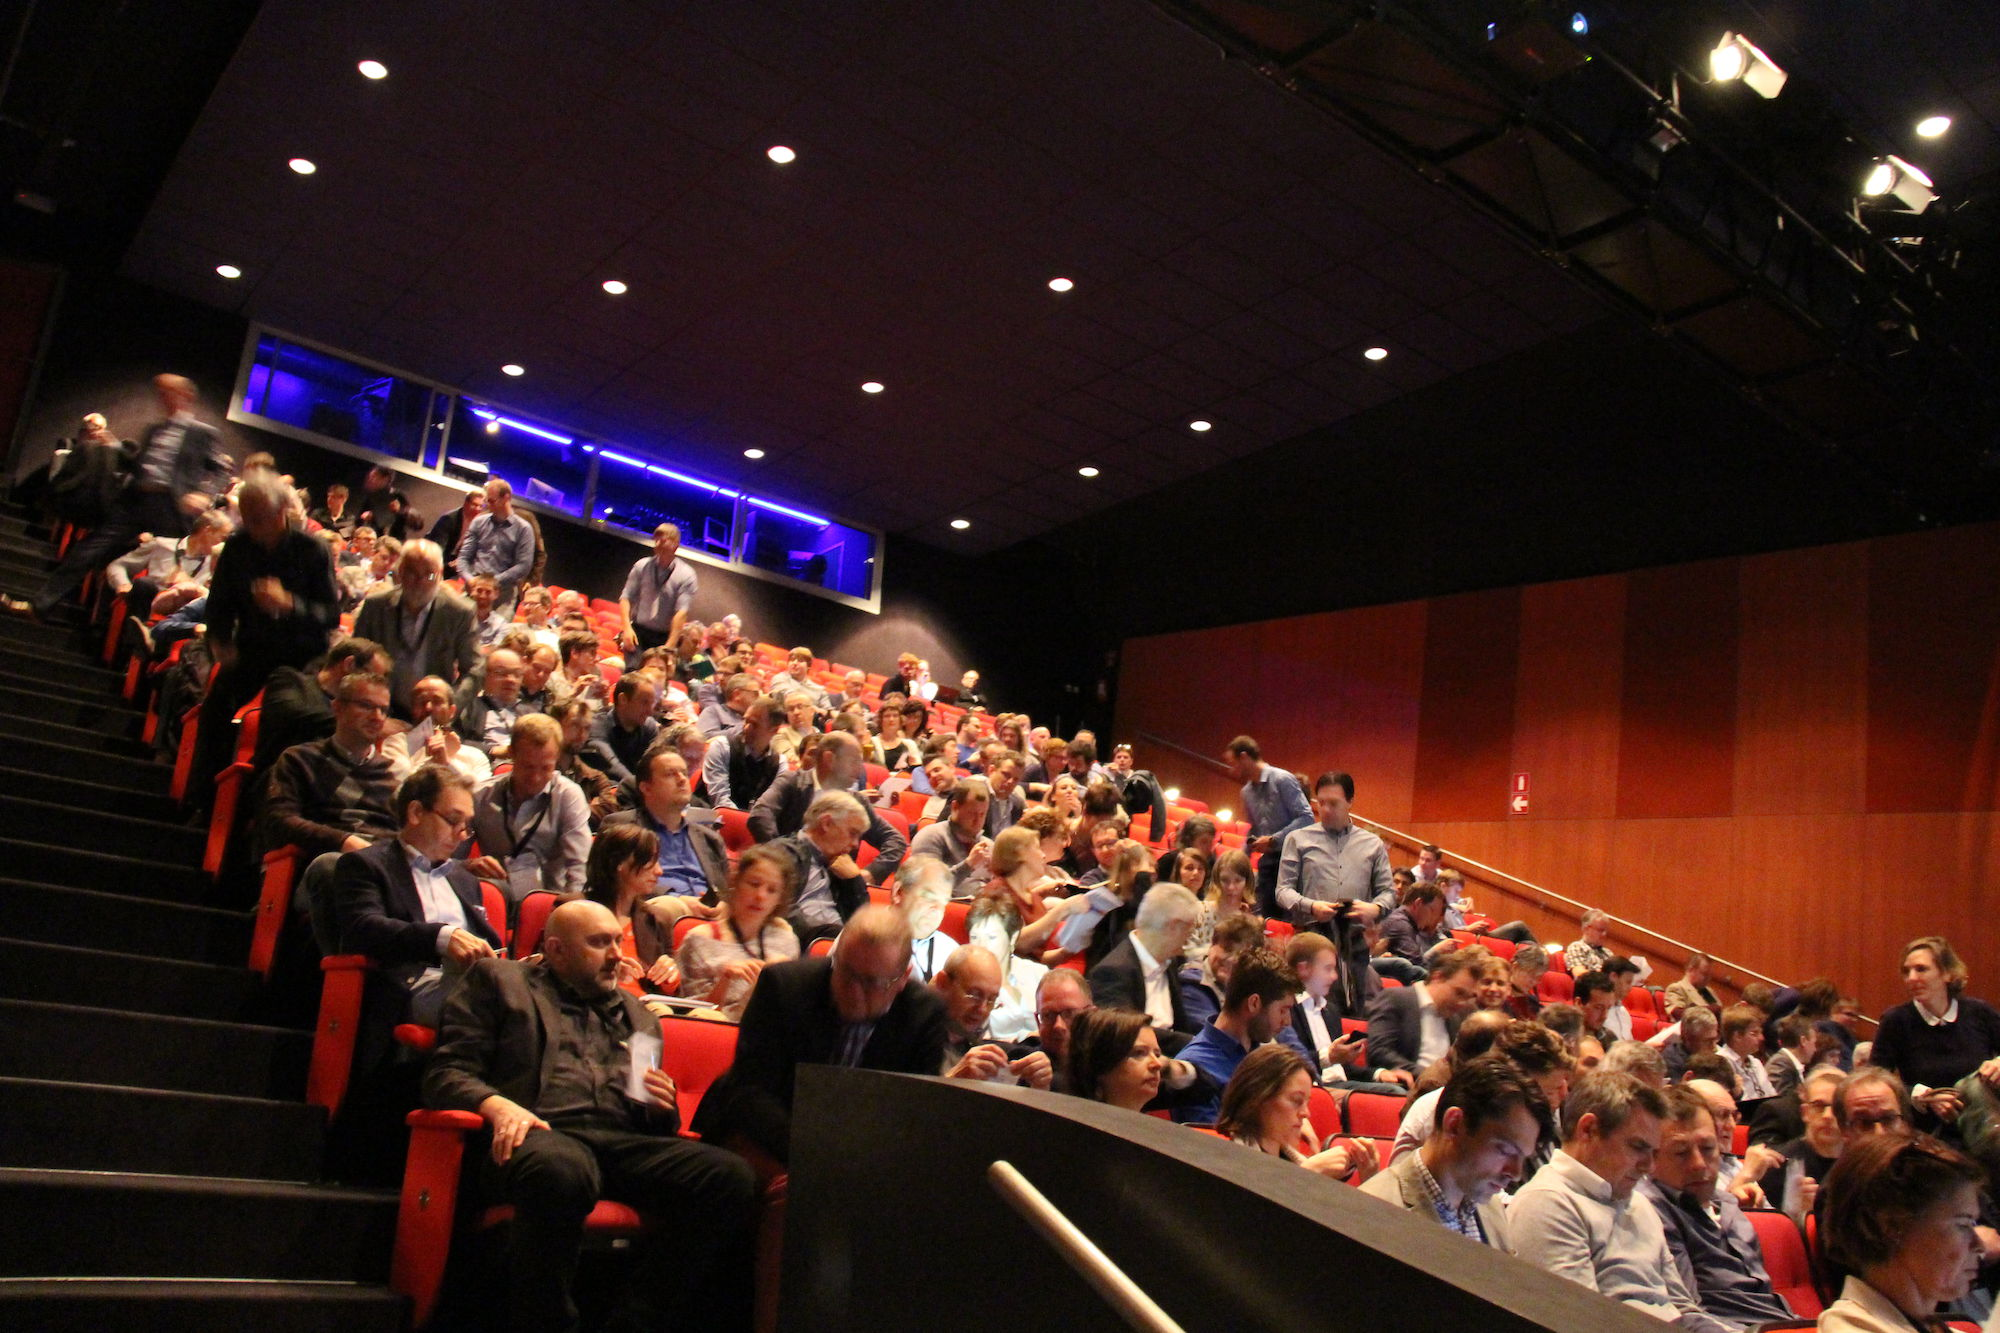 20180424_warmtecongres_VM_00069.JPG